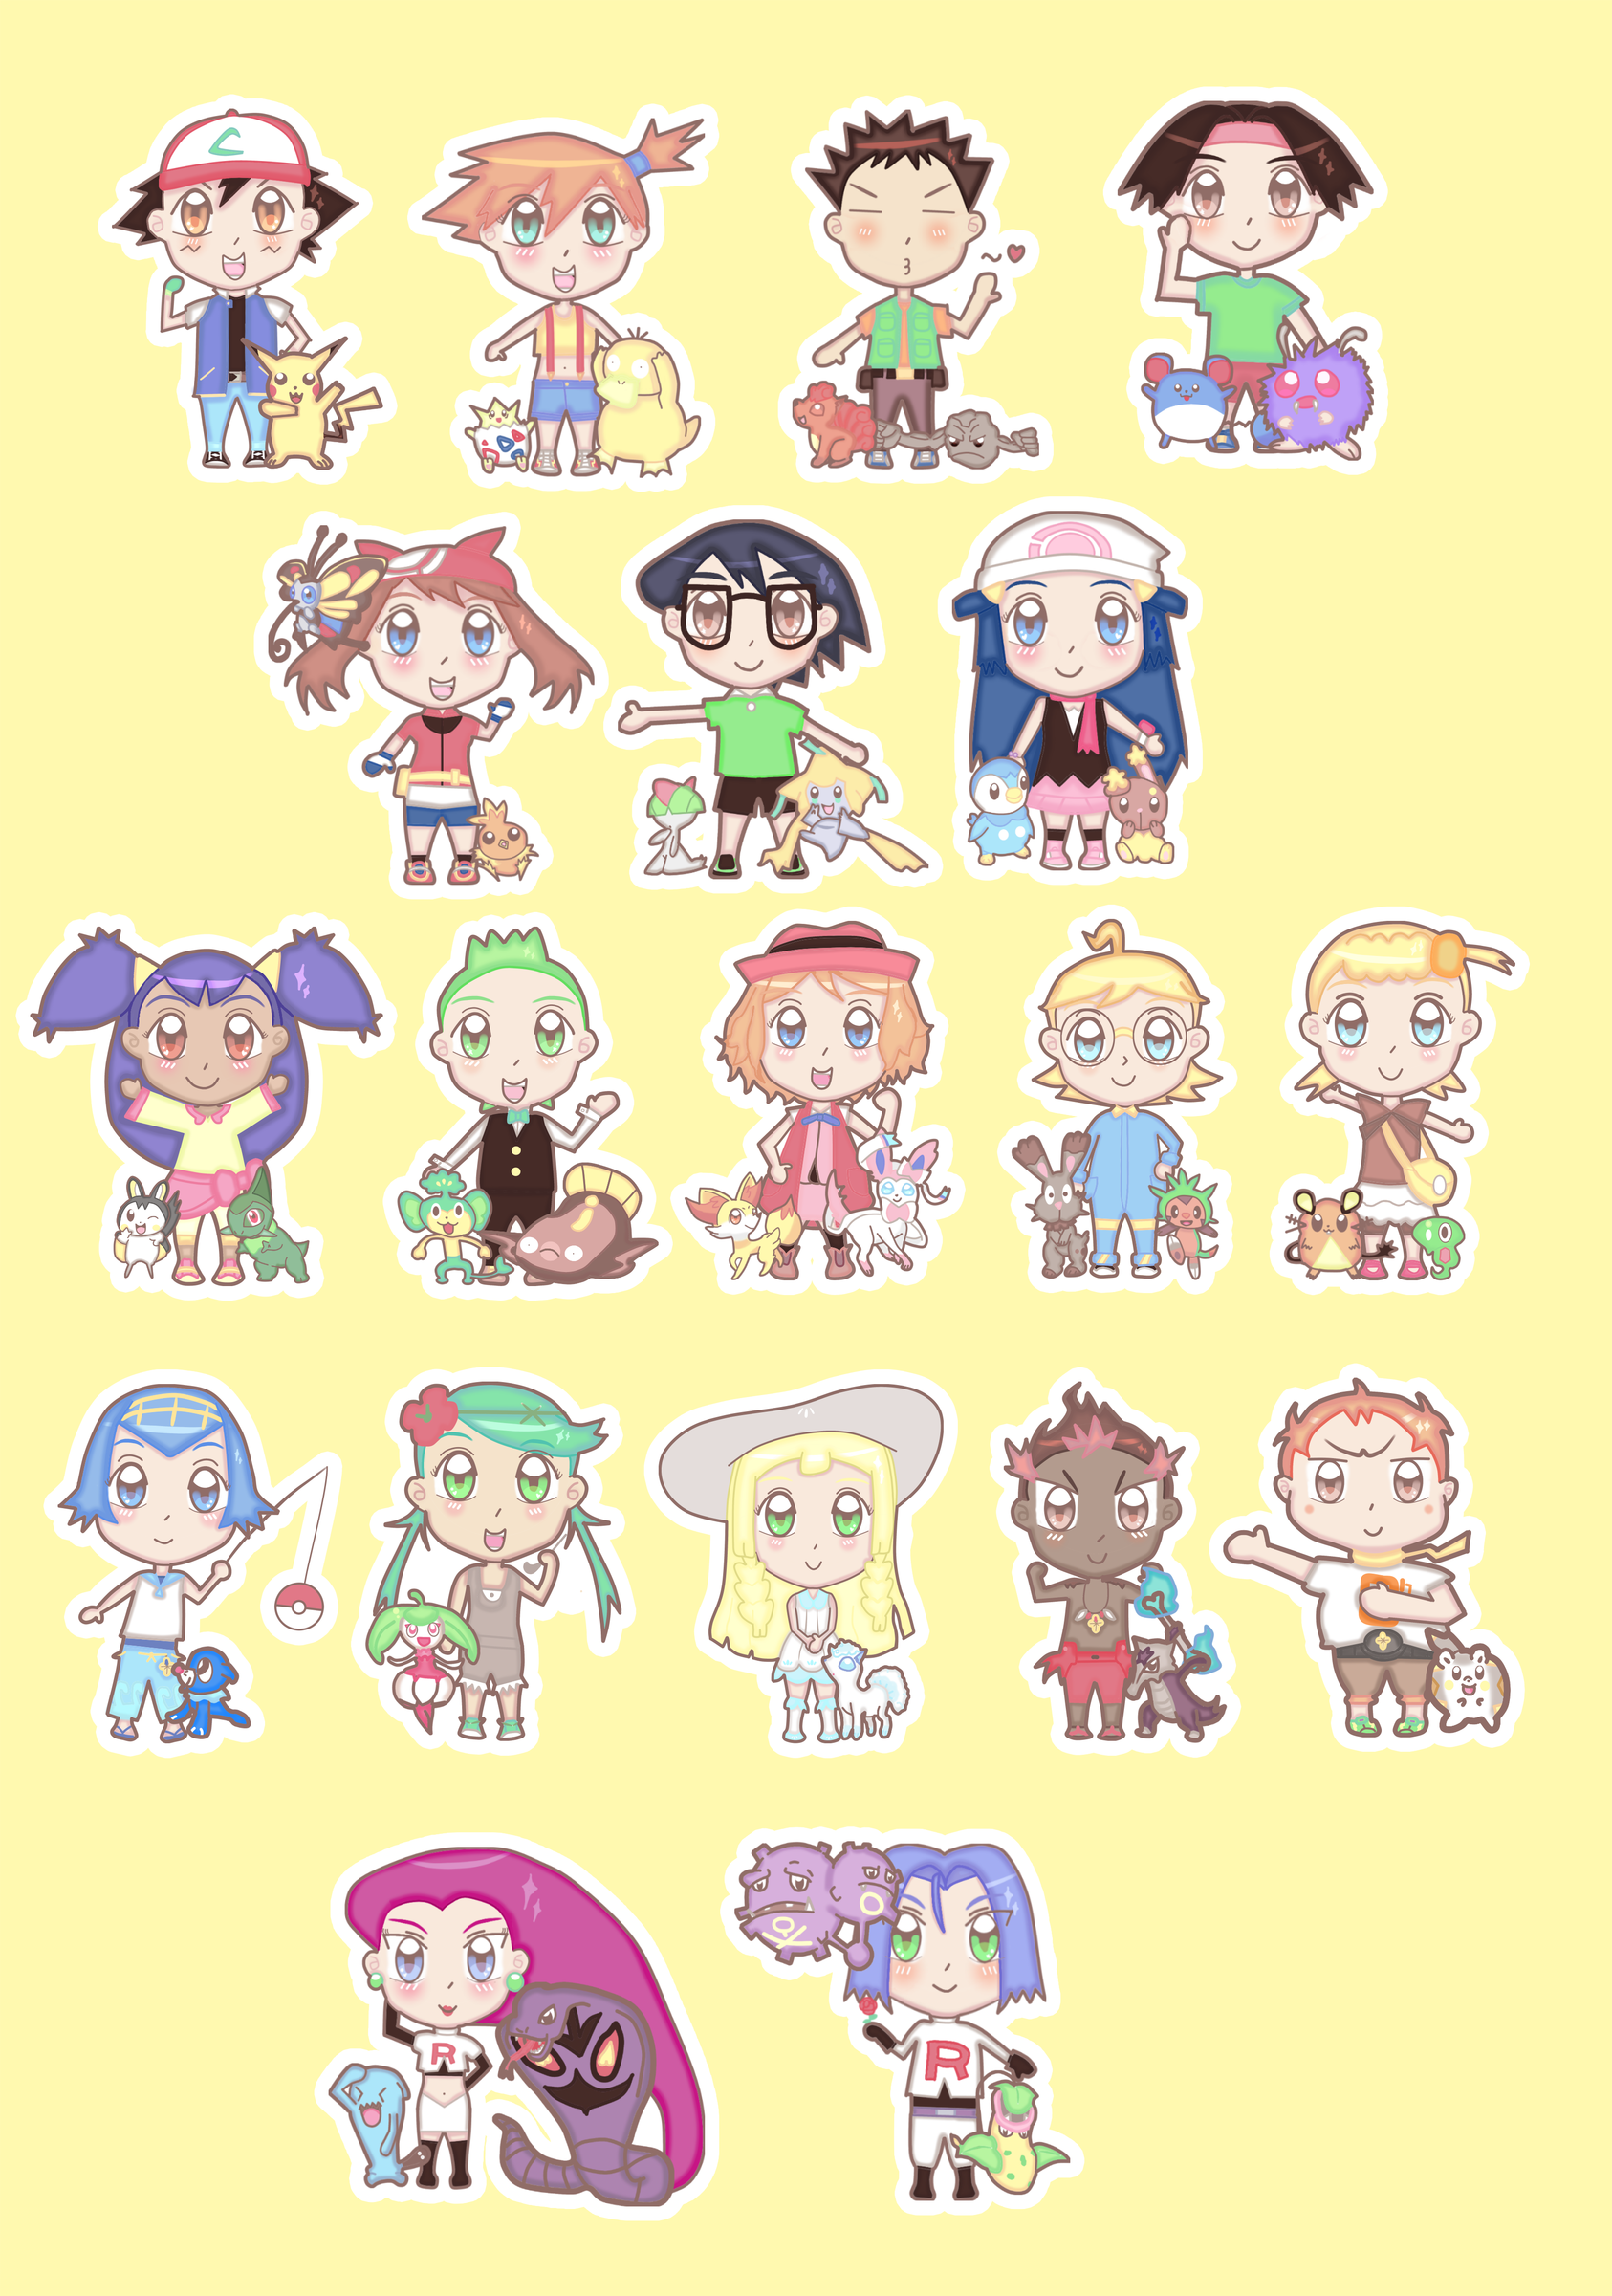 Pokemonanime Chibi Stickers Milktinarts Online Store Powered